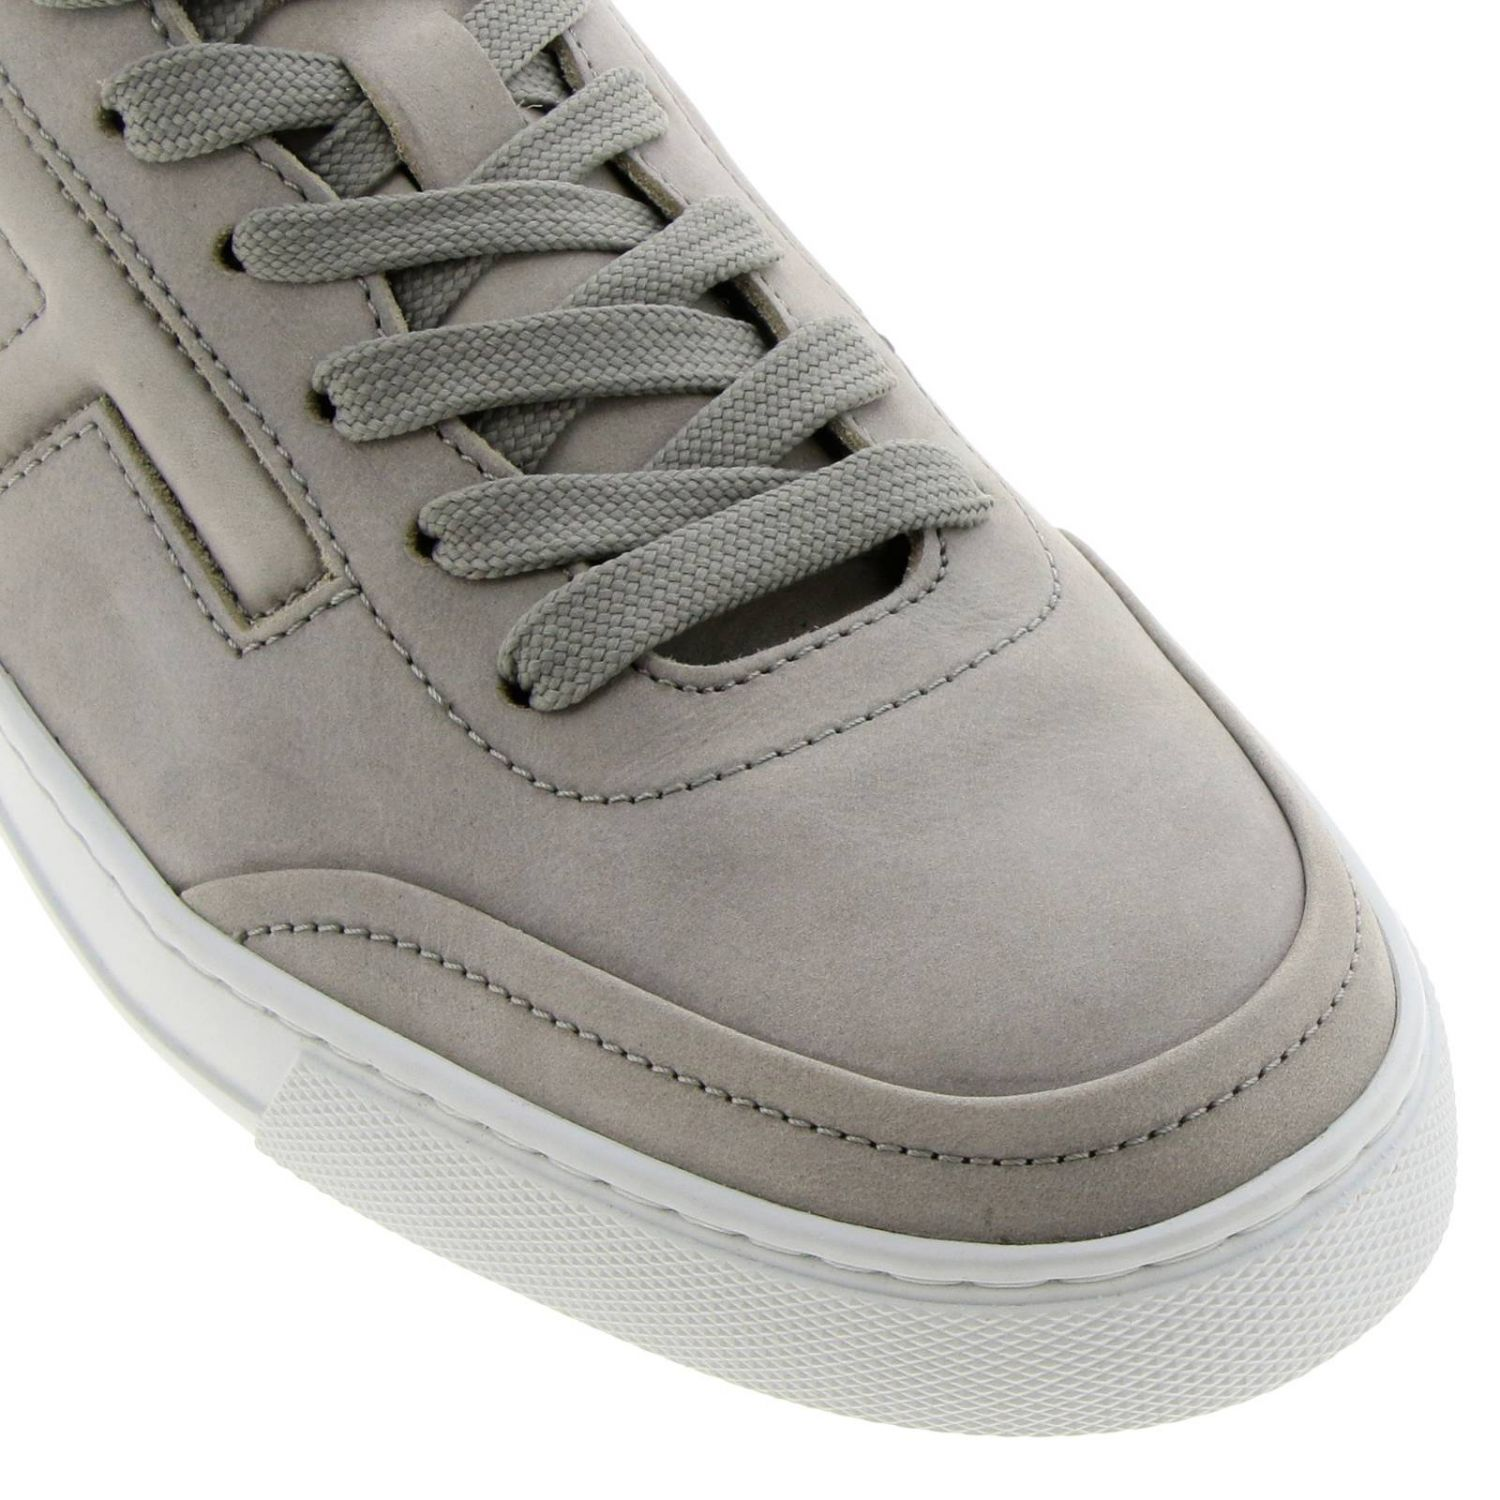 Shoes men Tod's ice 3